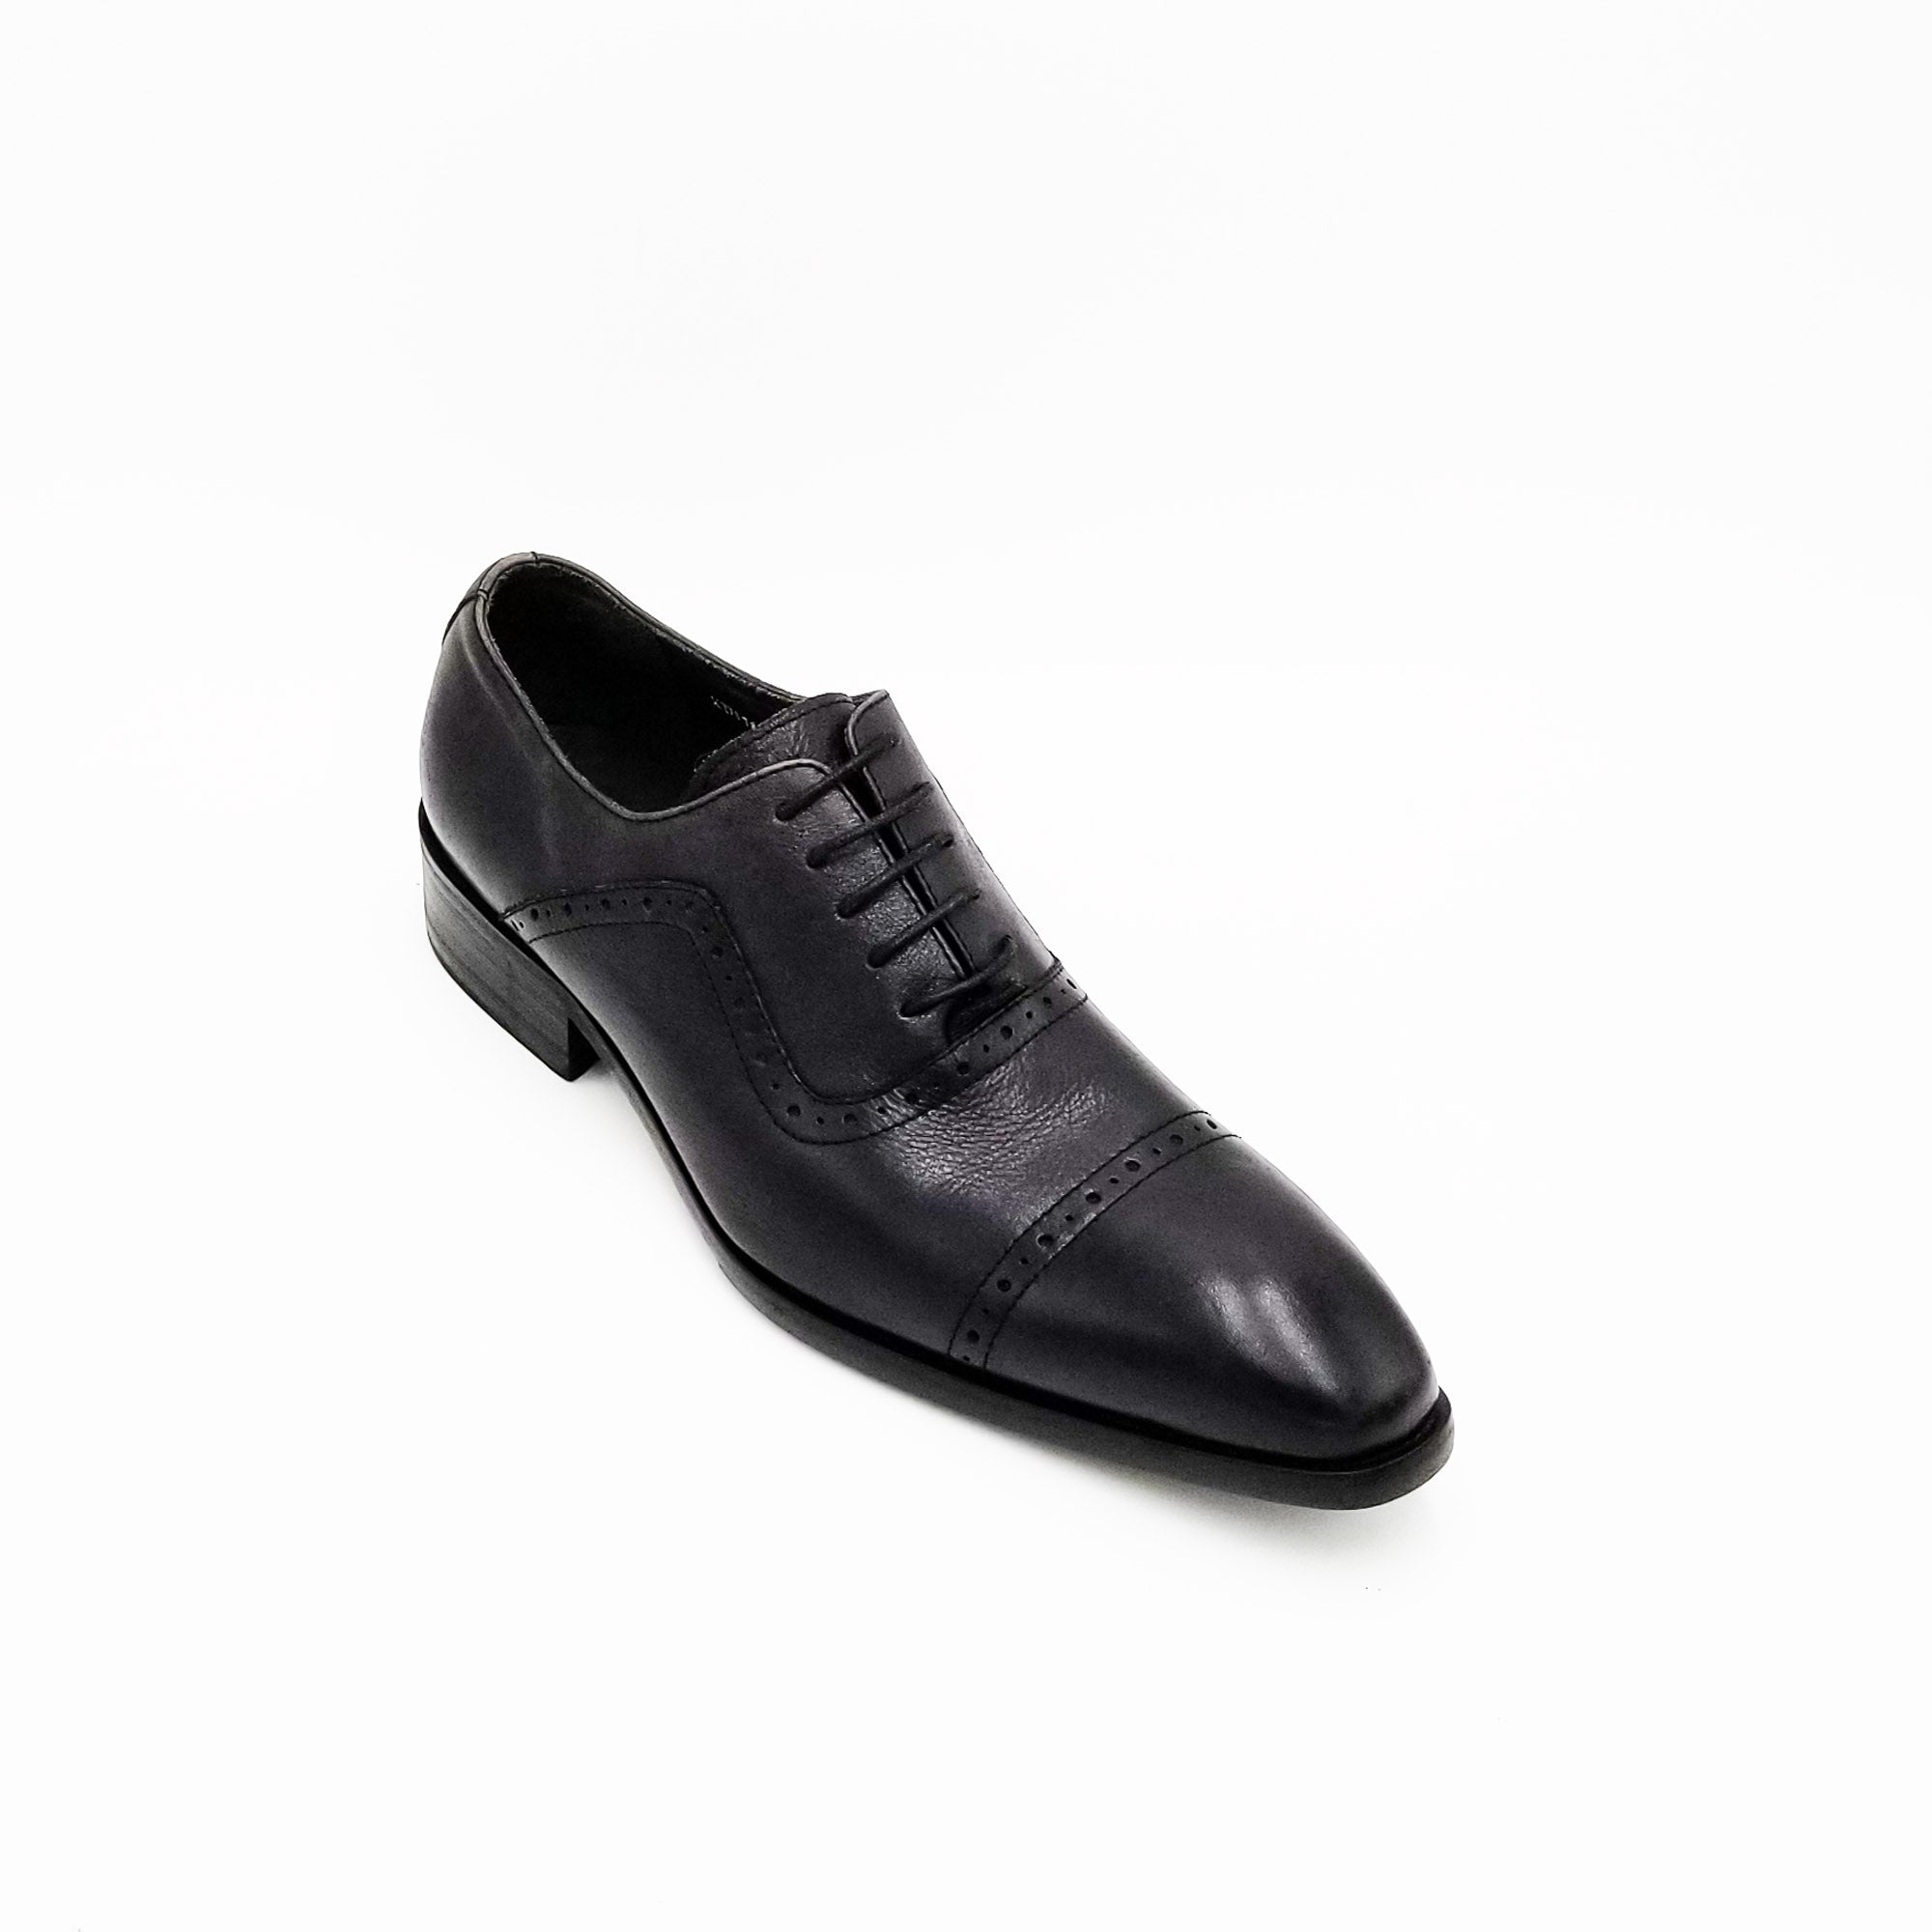 Zota USA Men's Dress Shoe HX81123